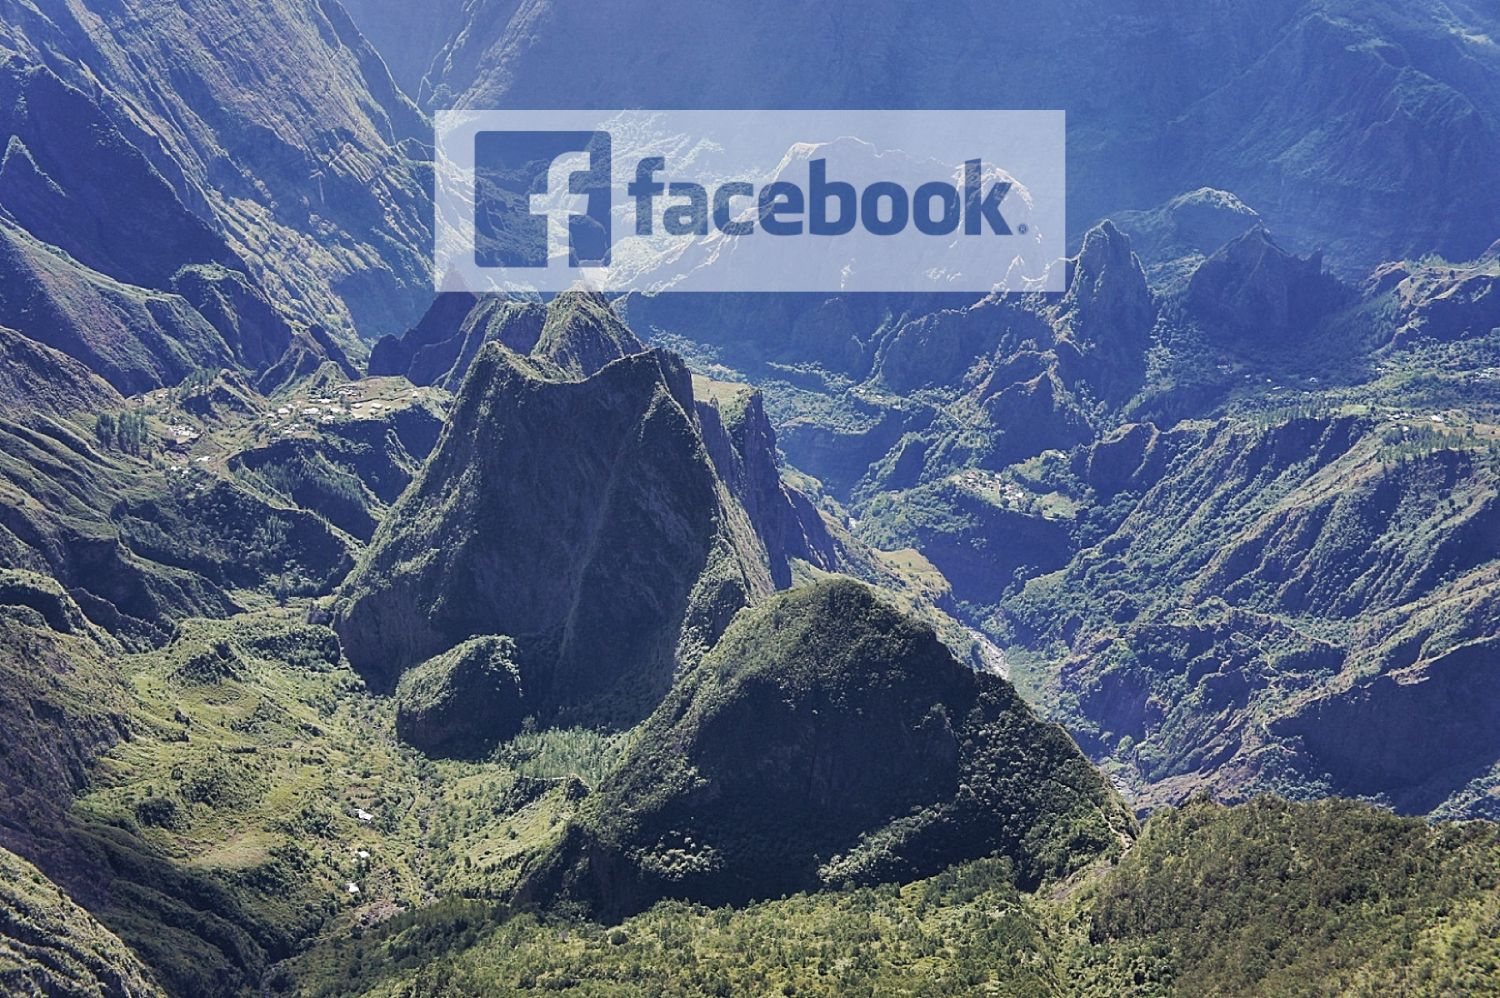 Le top 10 des pages Facebook qui cartonnent à La Réunion